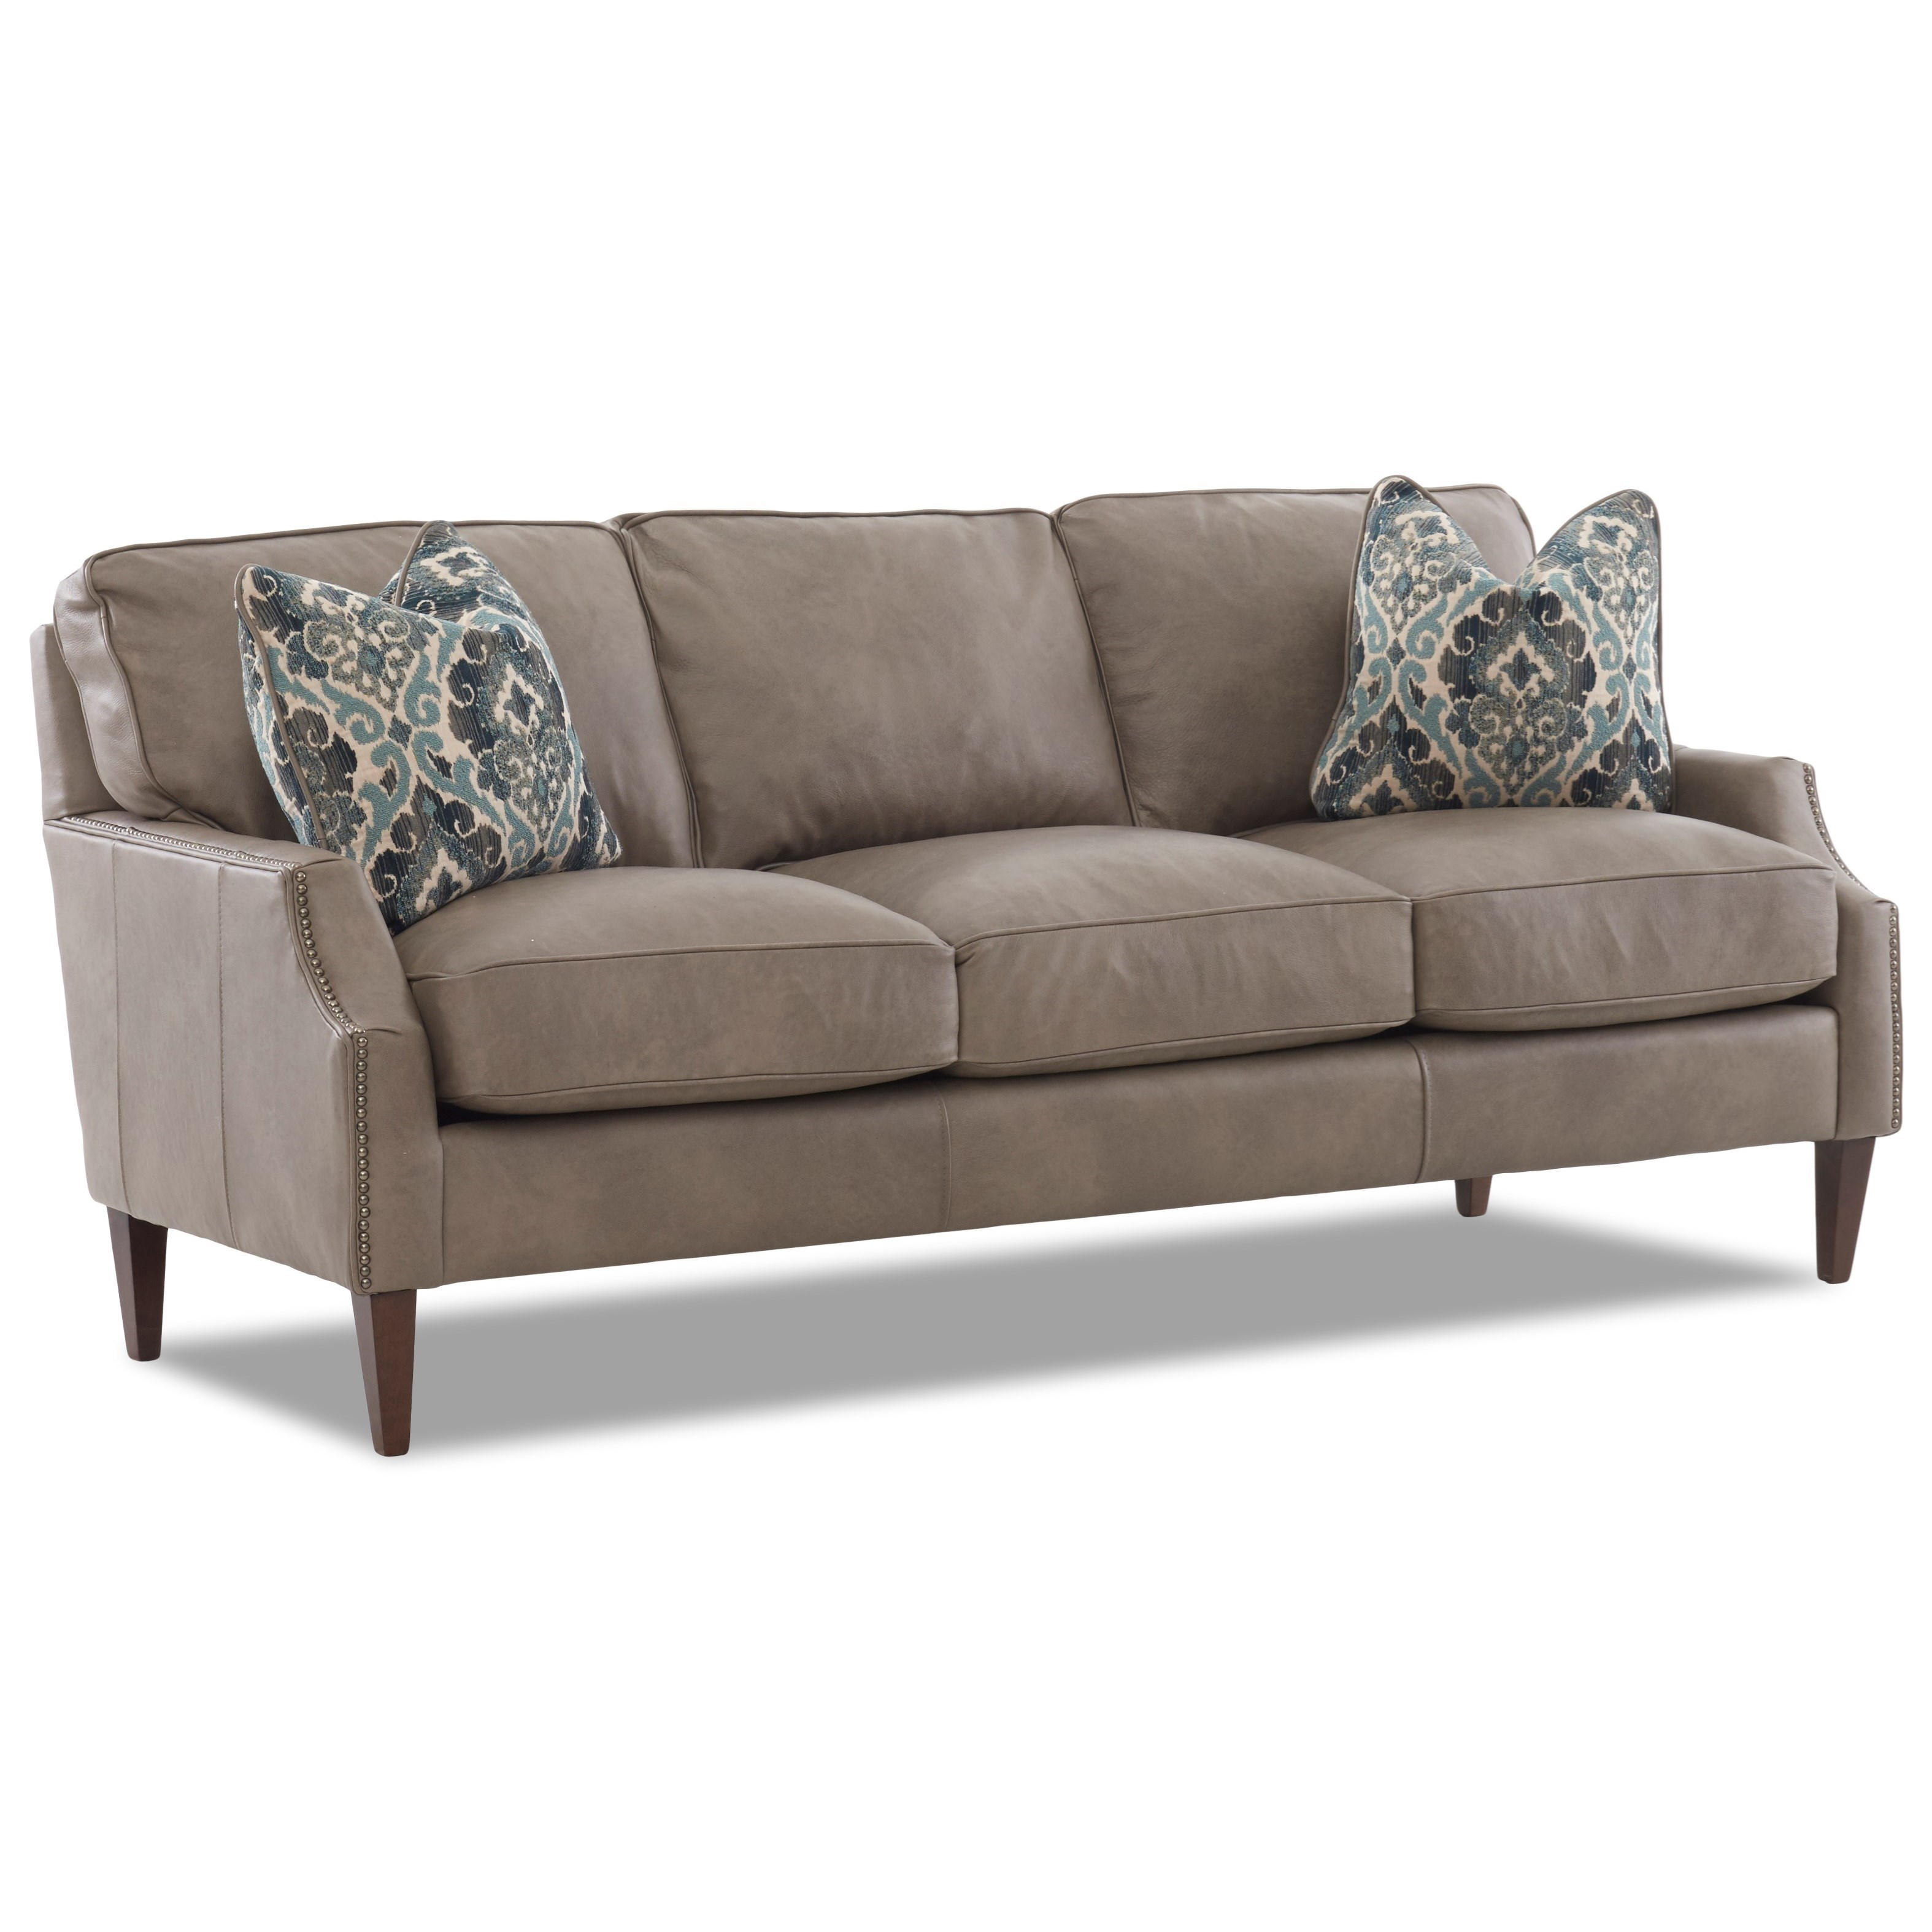 Grammercy Leather Sofa by Klaussner at Lapeer Furniture & Mattress Center